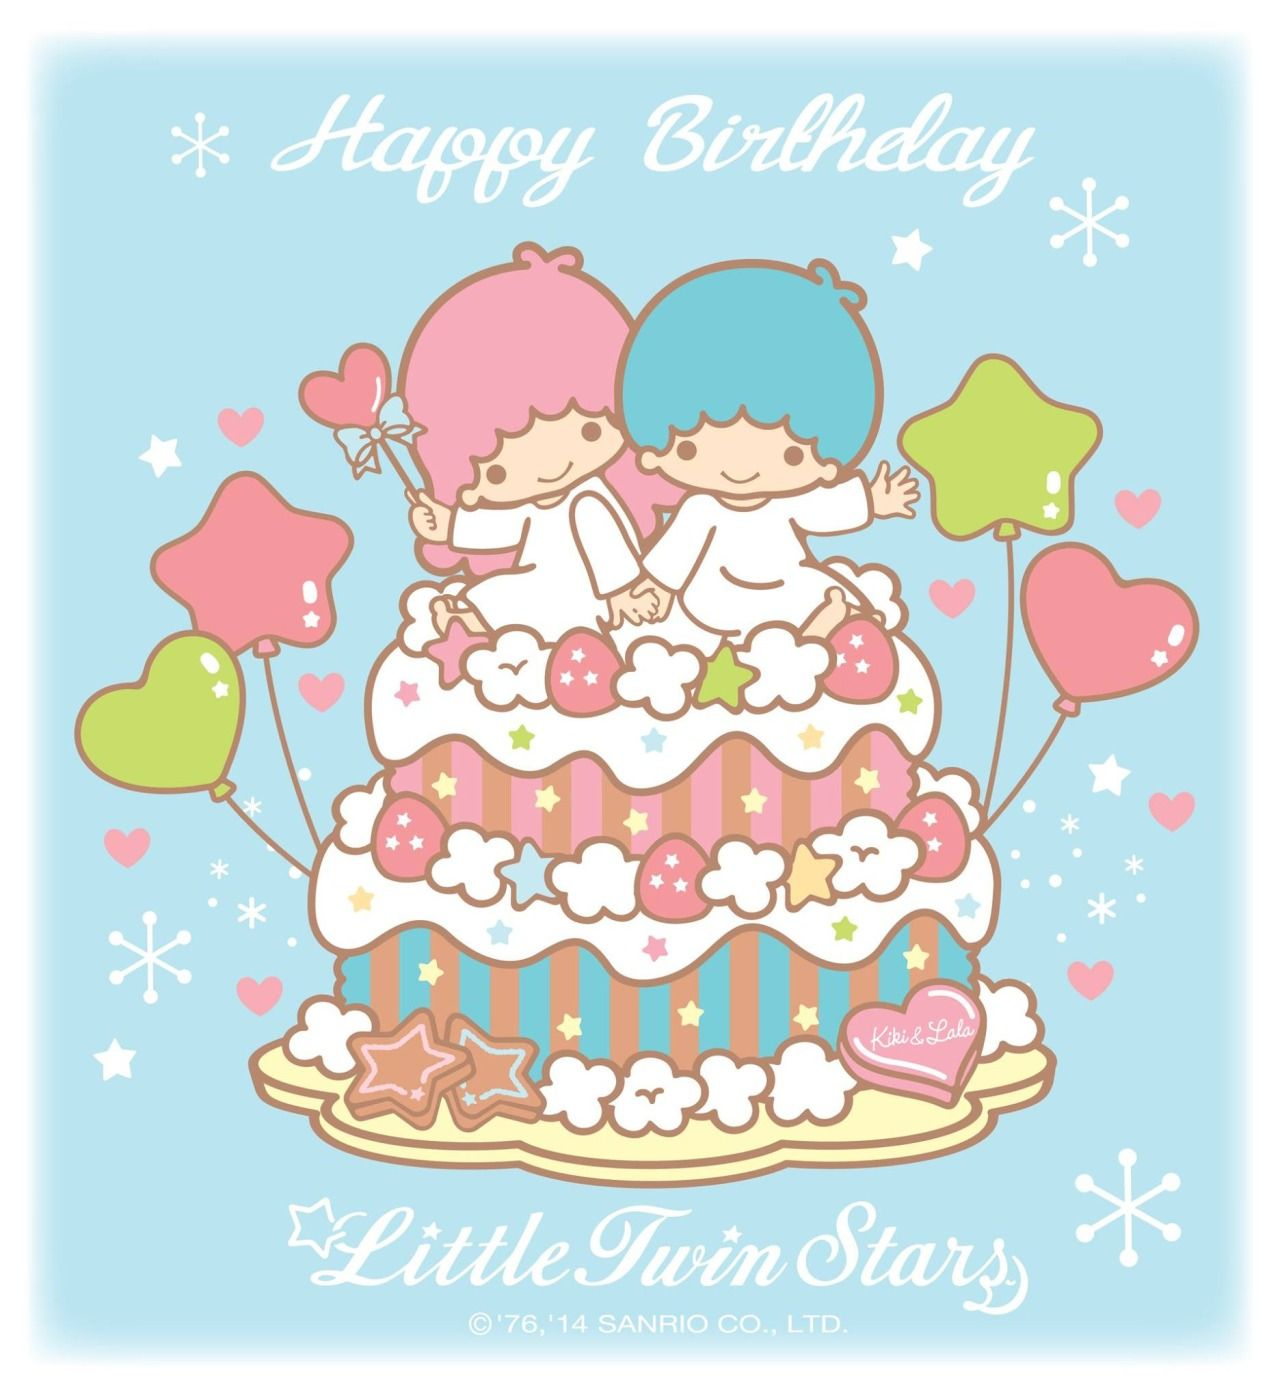 Little twin stars cartoon pinterest twins sanrio and star little twin stars birthday wishes as courtesy of sanrio via collection of tinkevidia kristyandbryce Gallery